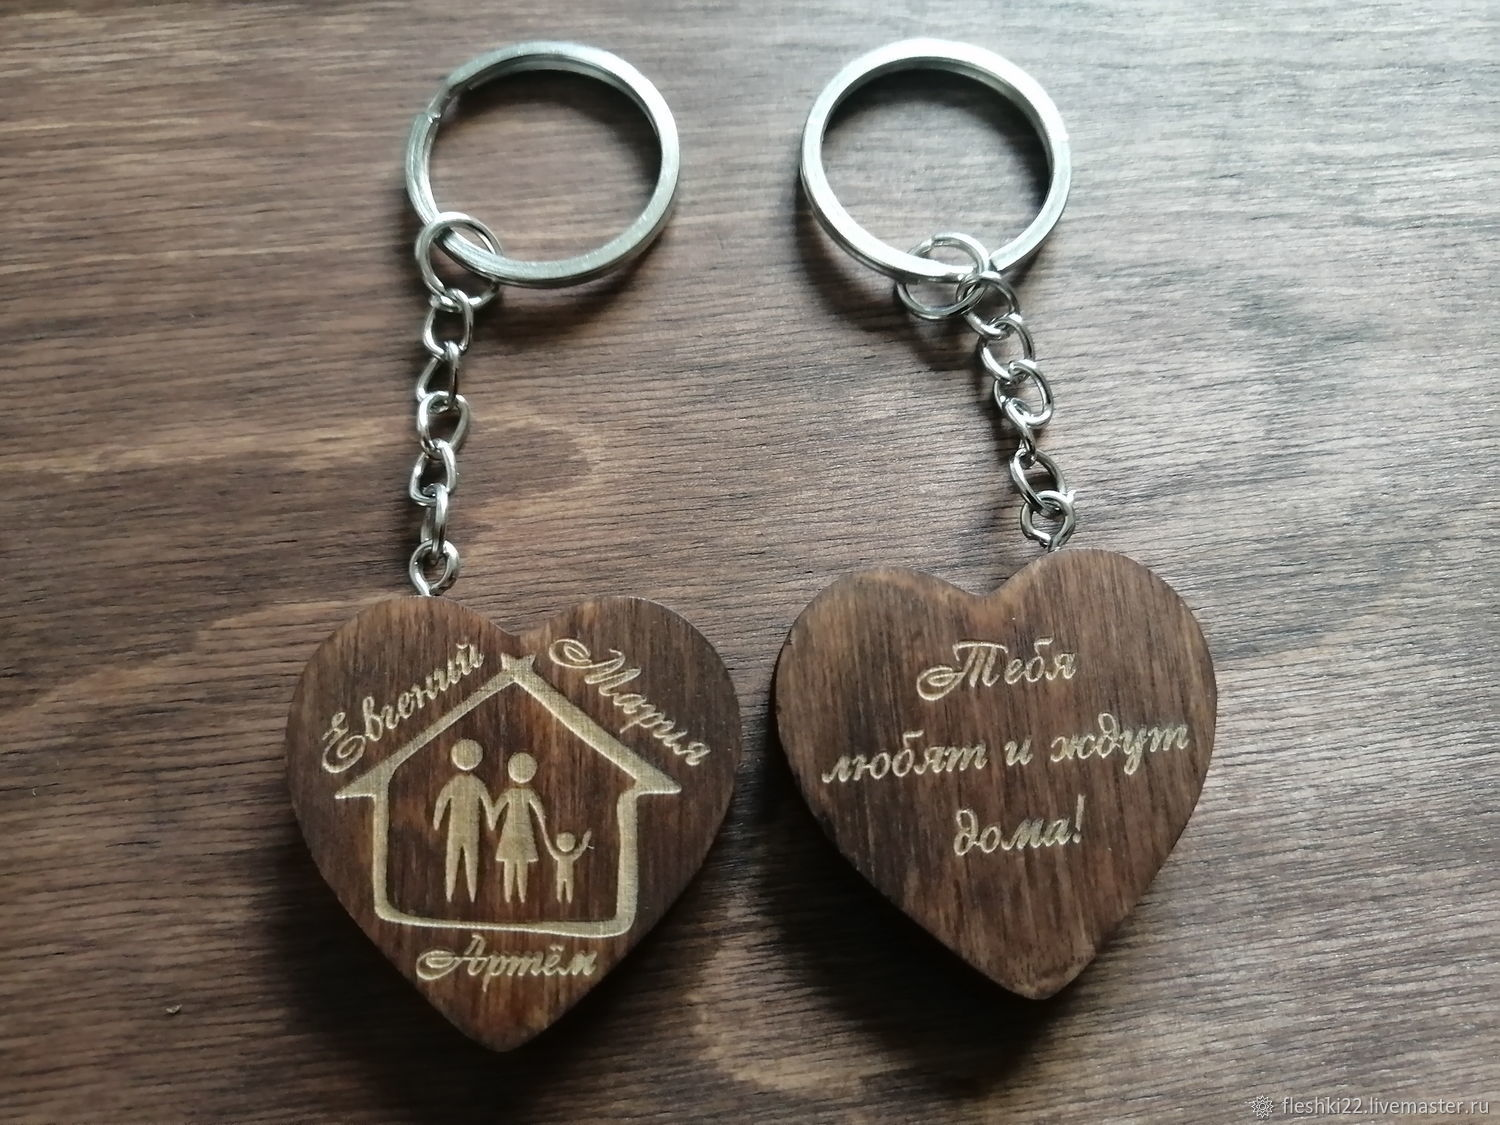 Key chain, paired wooden key chain with engraving, design, Key chain, Barnaul,  Фото №1